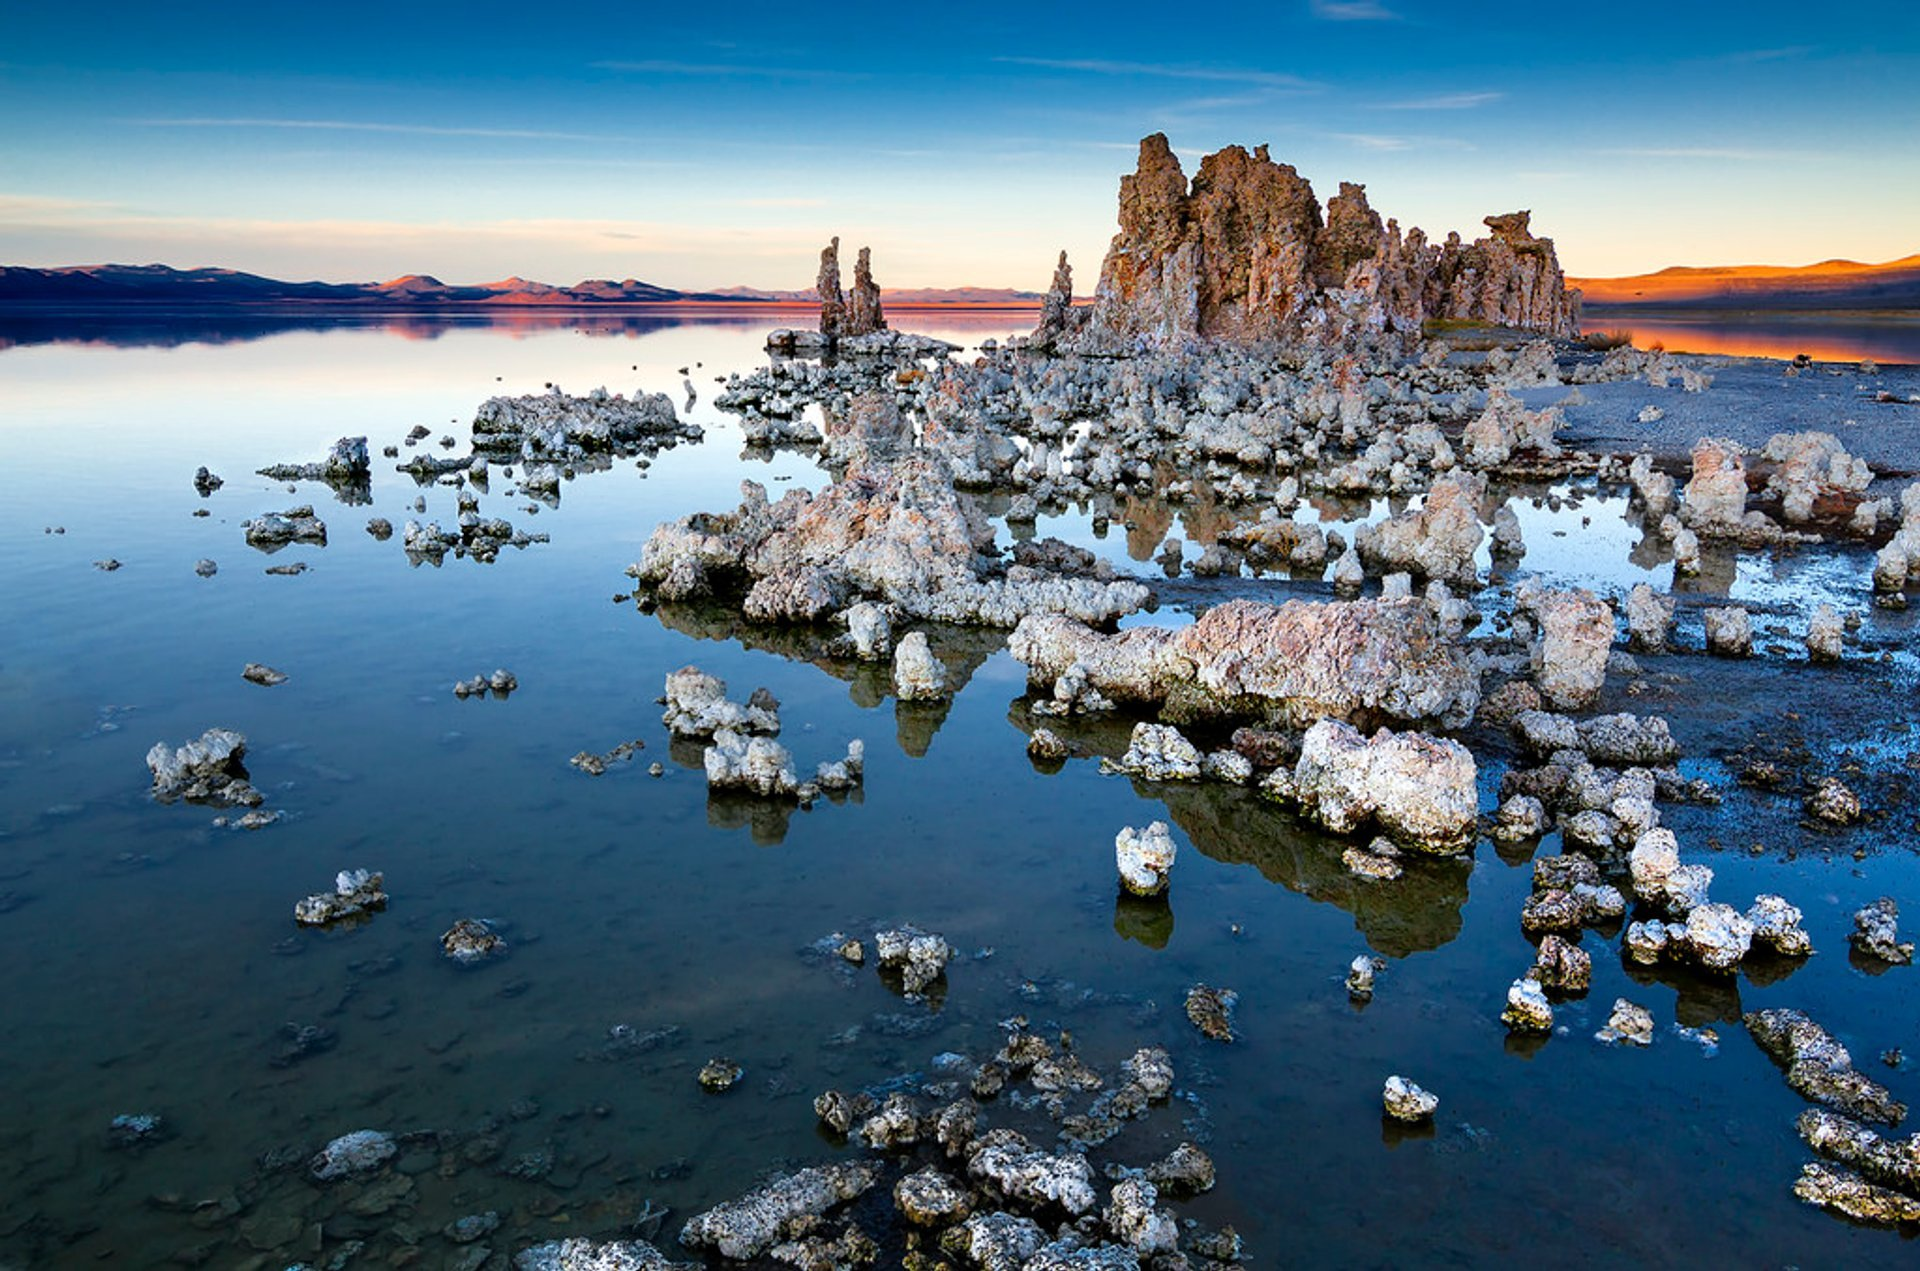 Tufa Towers of Mono Lake in California 2020 - Best Time